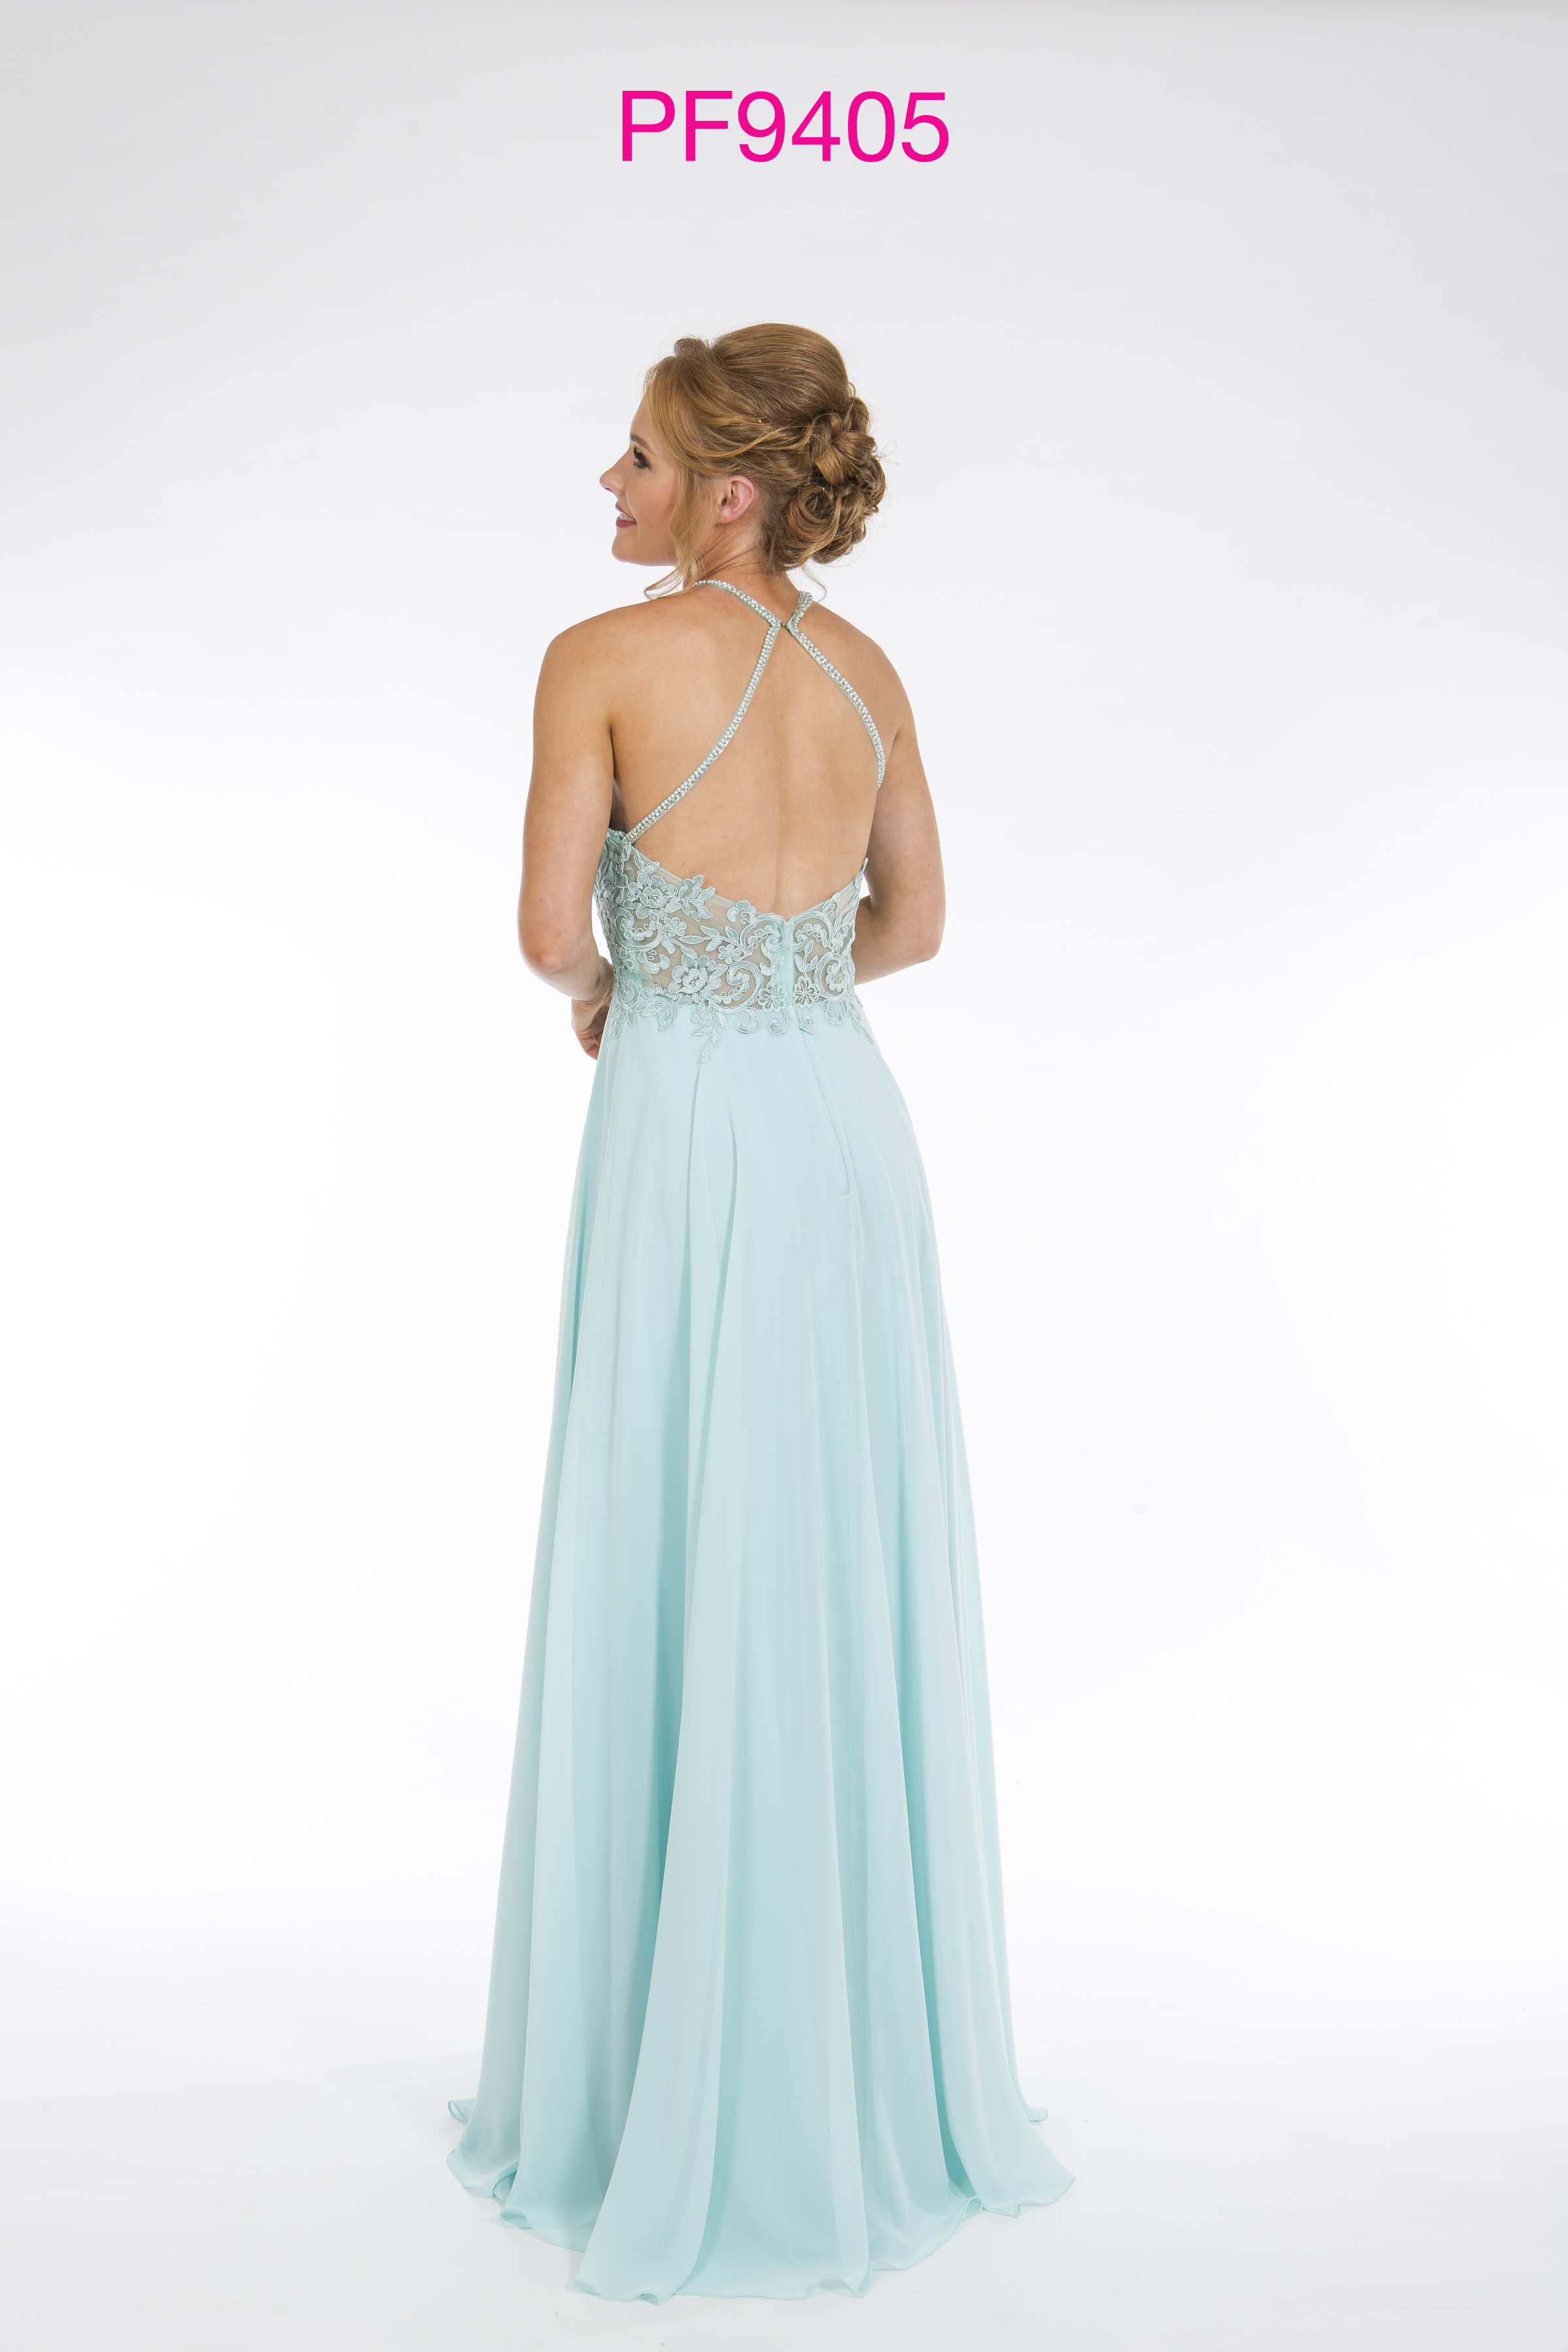 Prom Frocks Pf9405 Aqua Prom Dress Prom Frocks Uk Prom